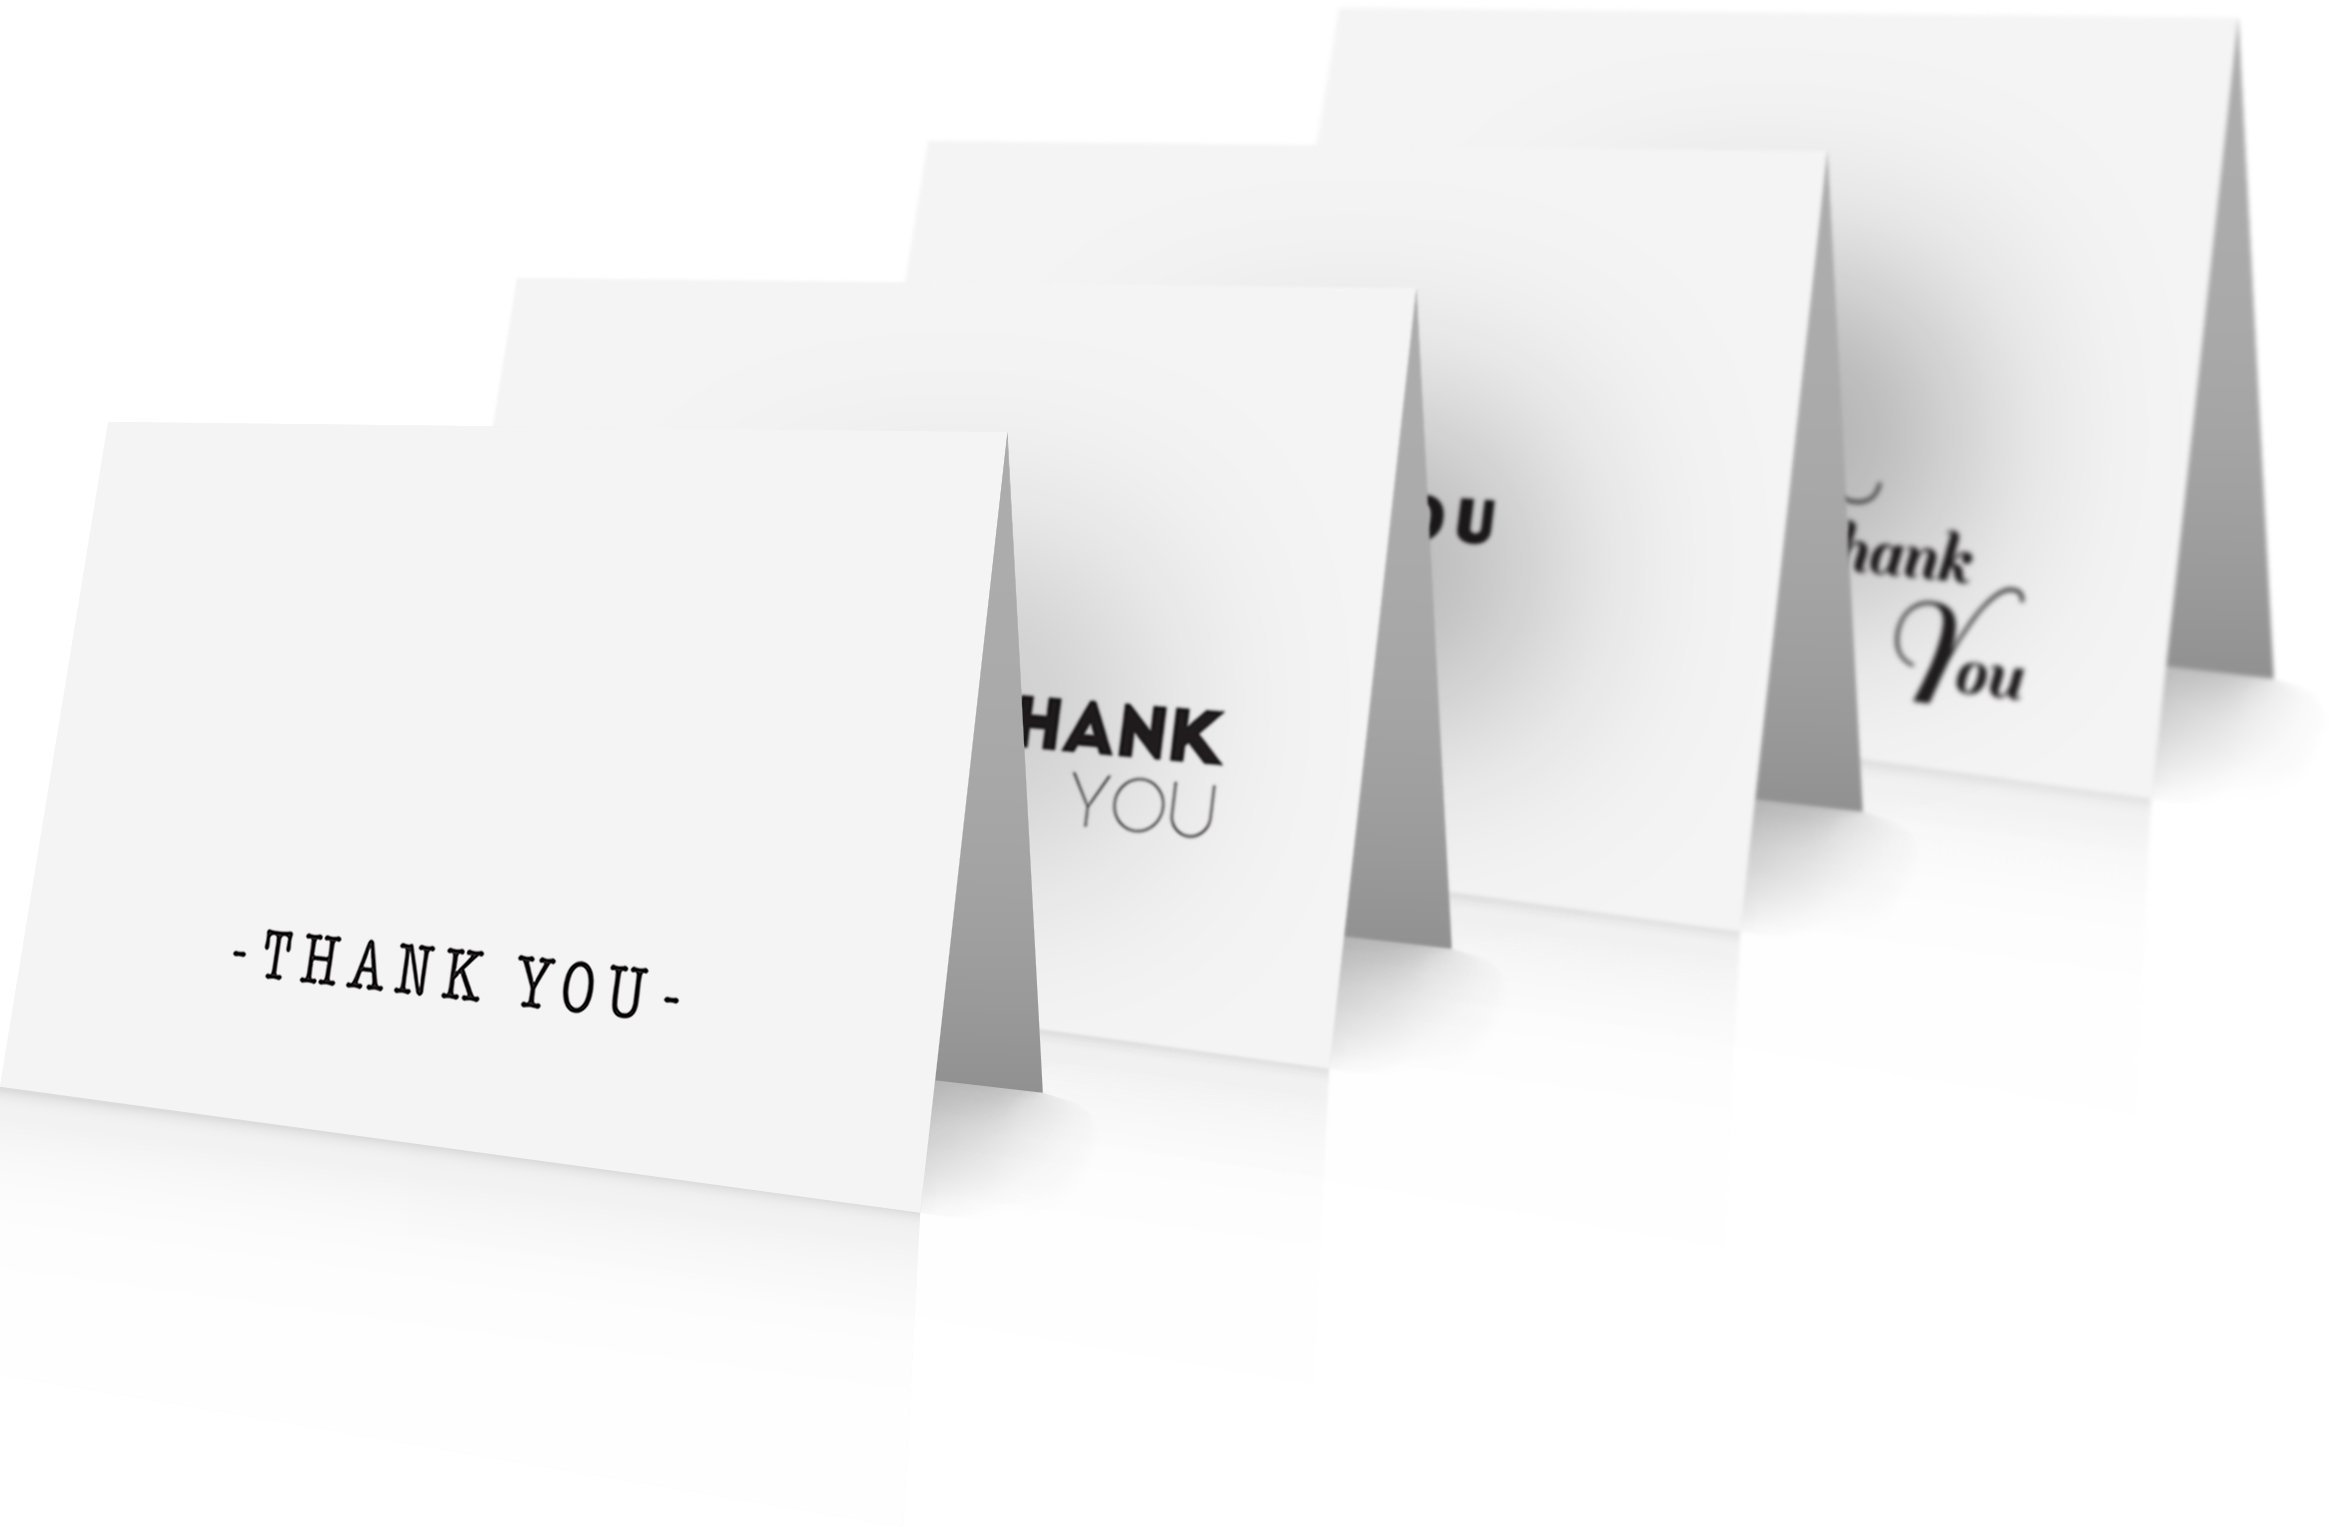 Simple Classic Thank You Cards - (24) Bulk Thank You Note Cards with Envelopes